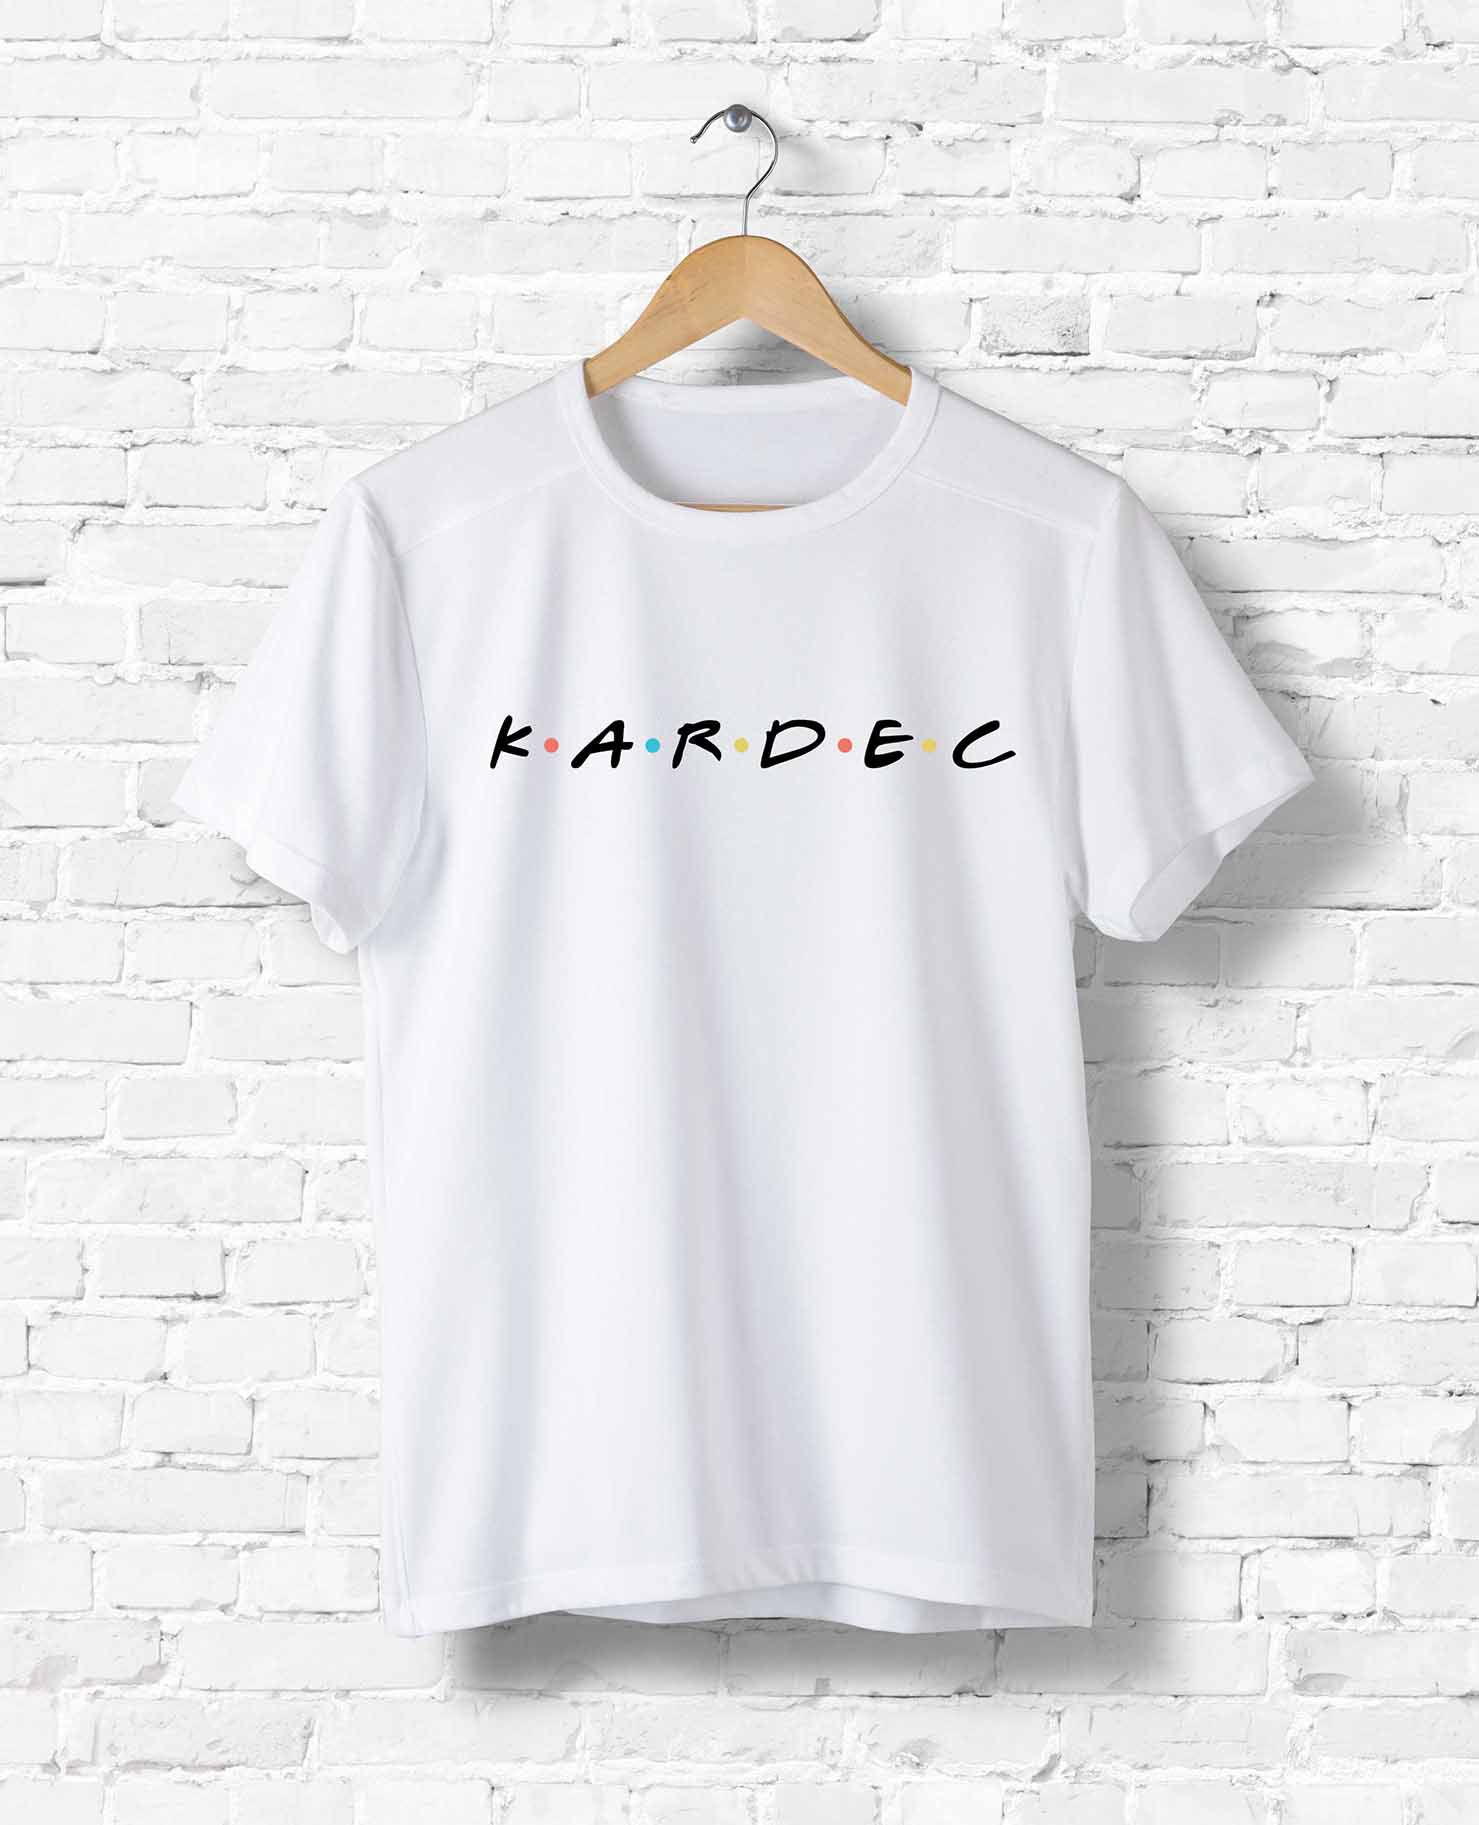 Camiseta Kardec (Friends)